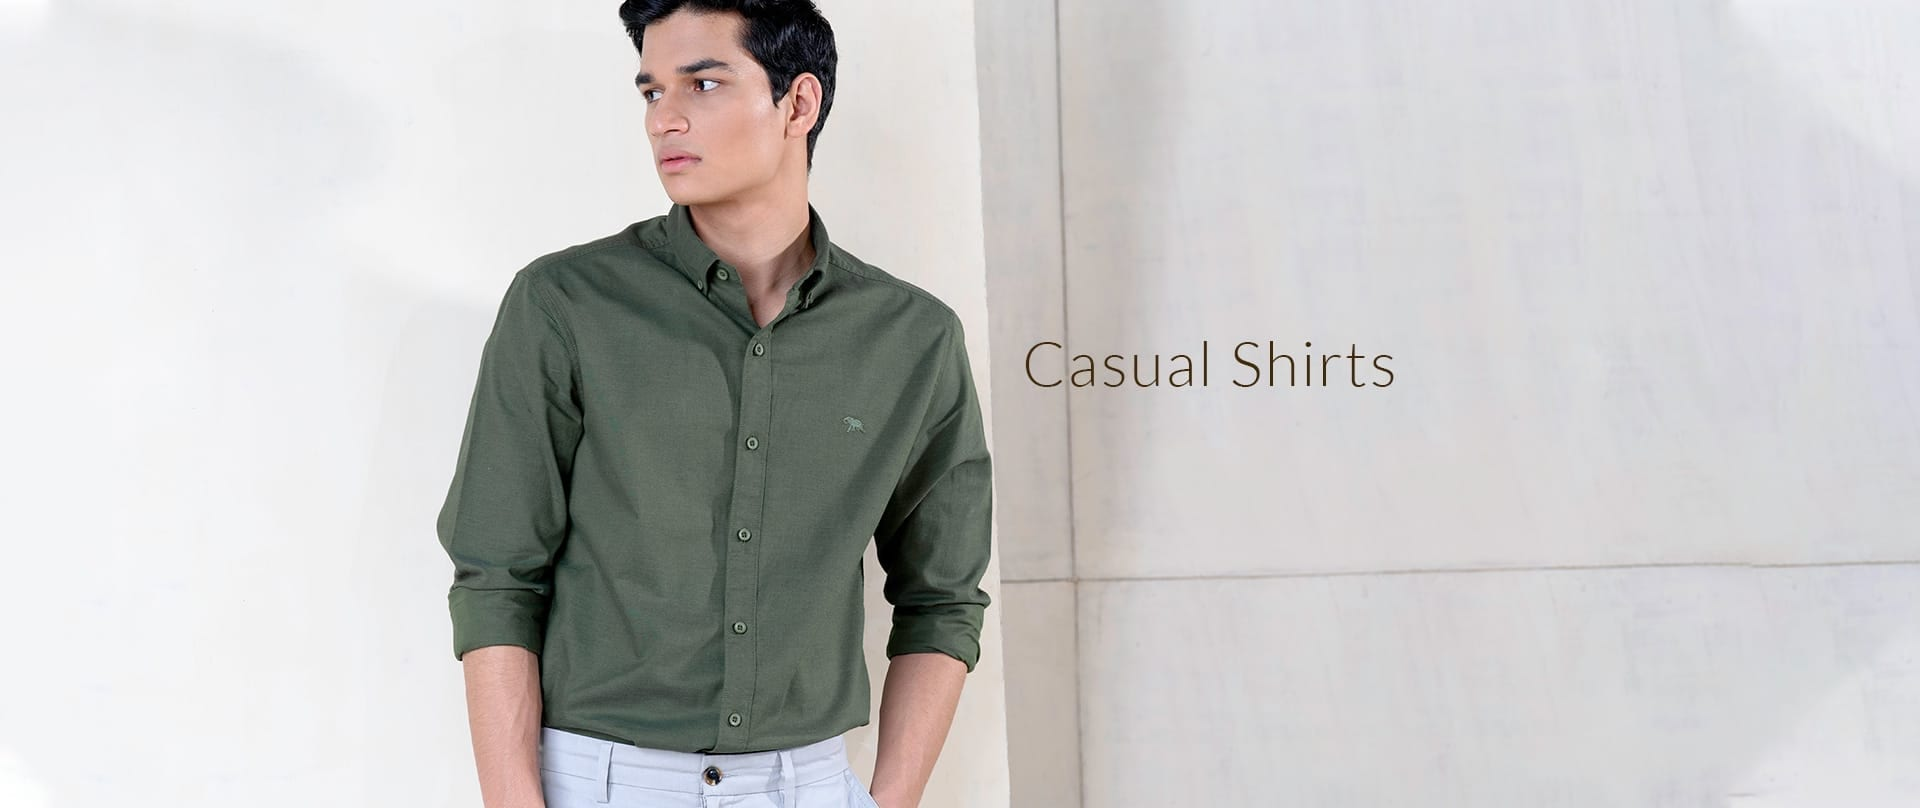 Branded Casual Shirts For Men